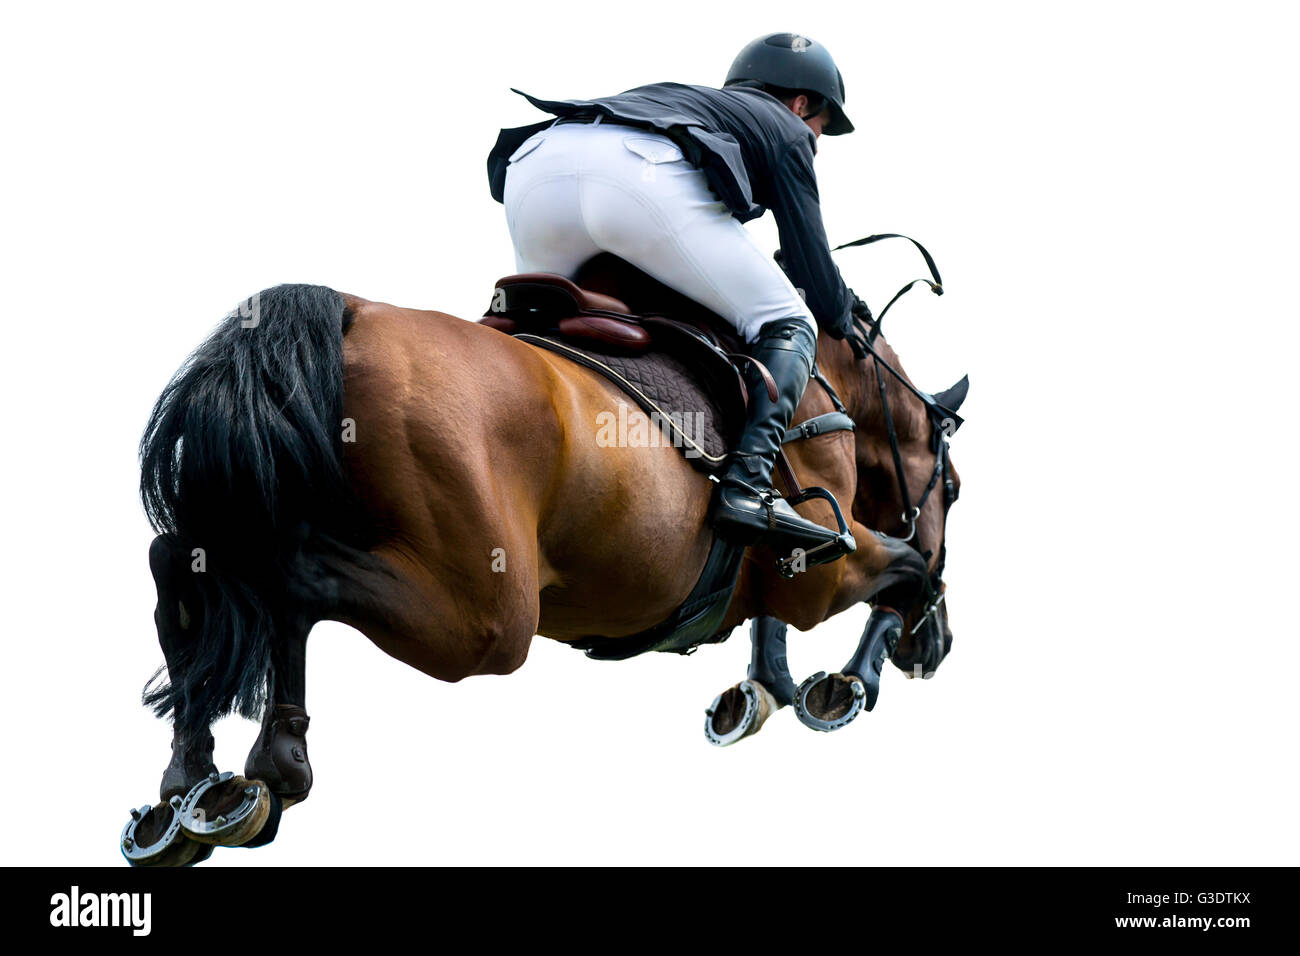 Horse Jumping, Equestrian Sports, Isolated on White Background - Stock Image